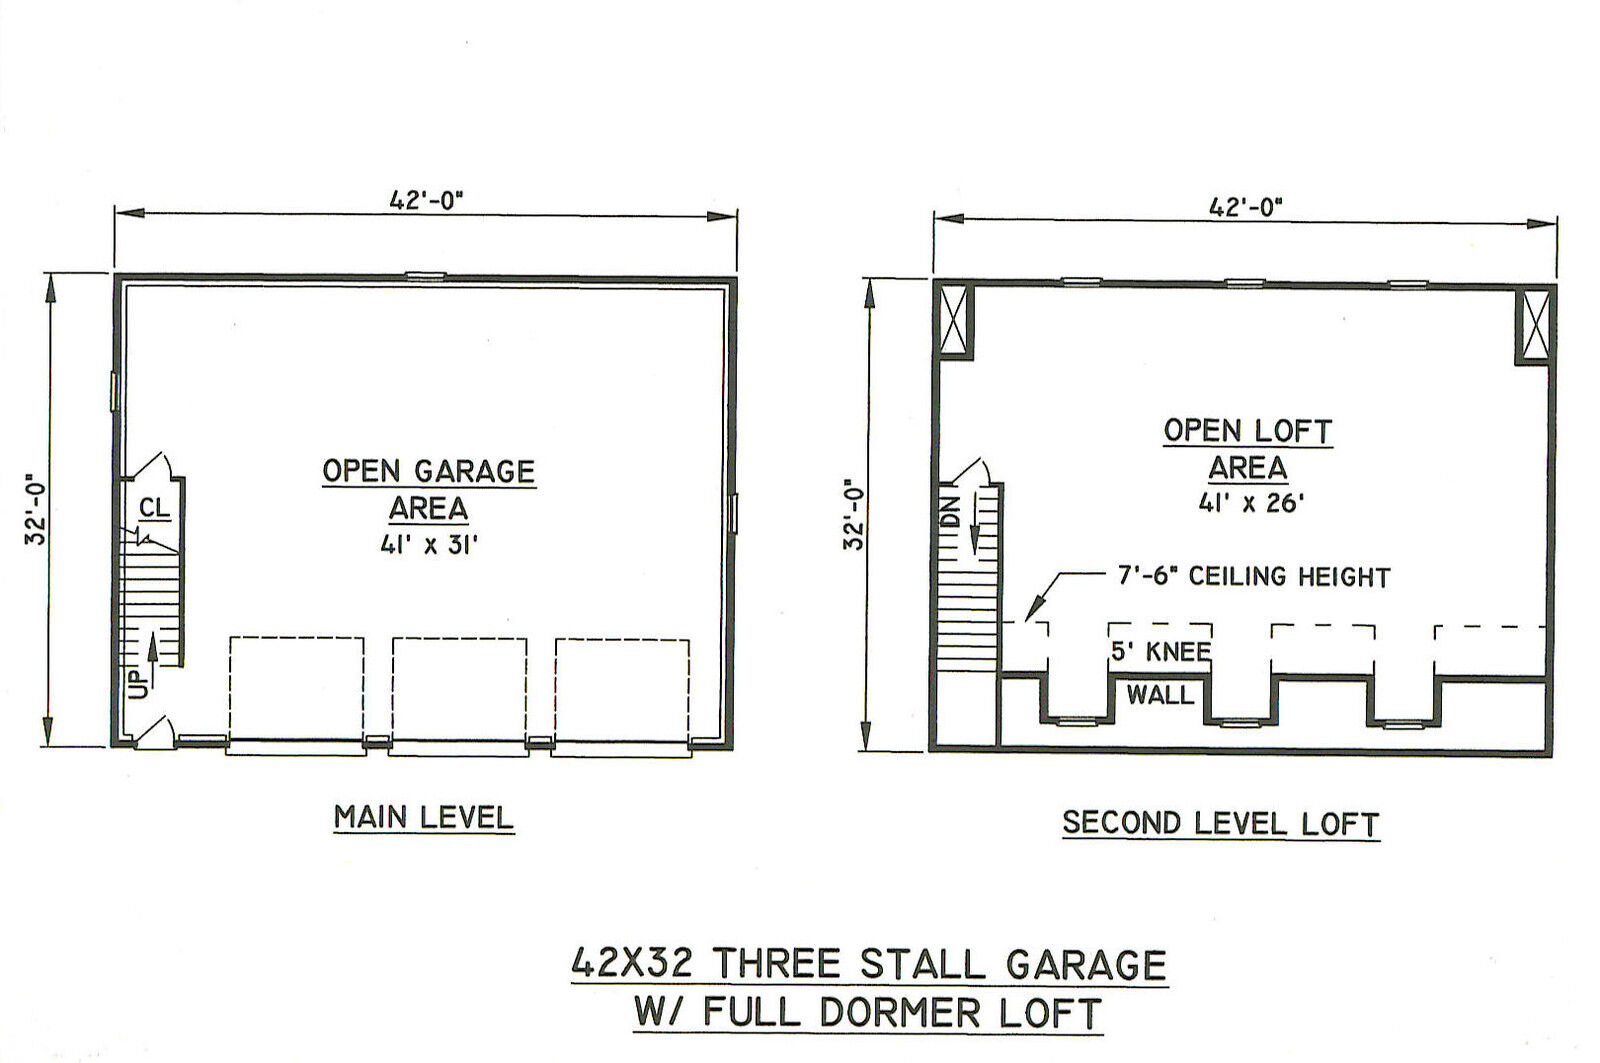 42 x 32 3 car td garage with dormered lft building for Garage sn autos 42